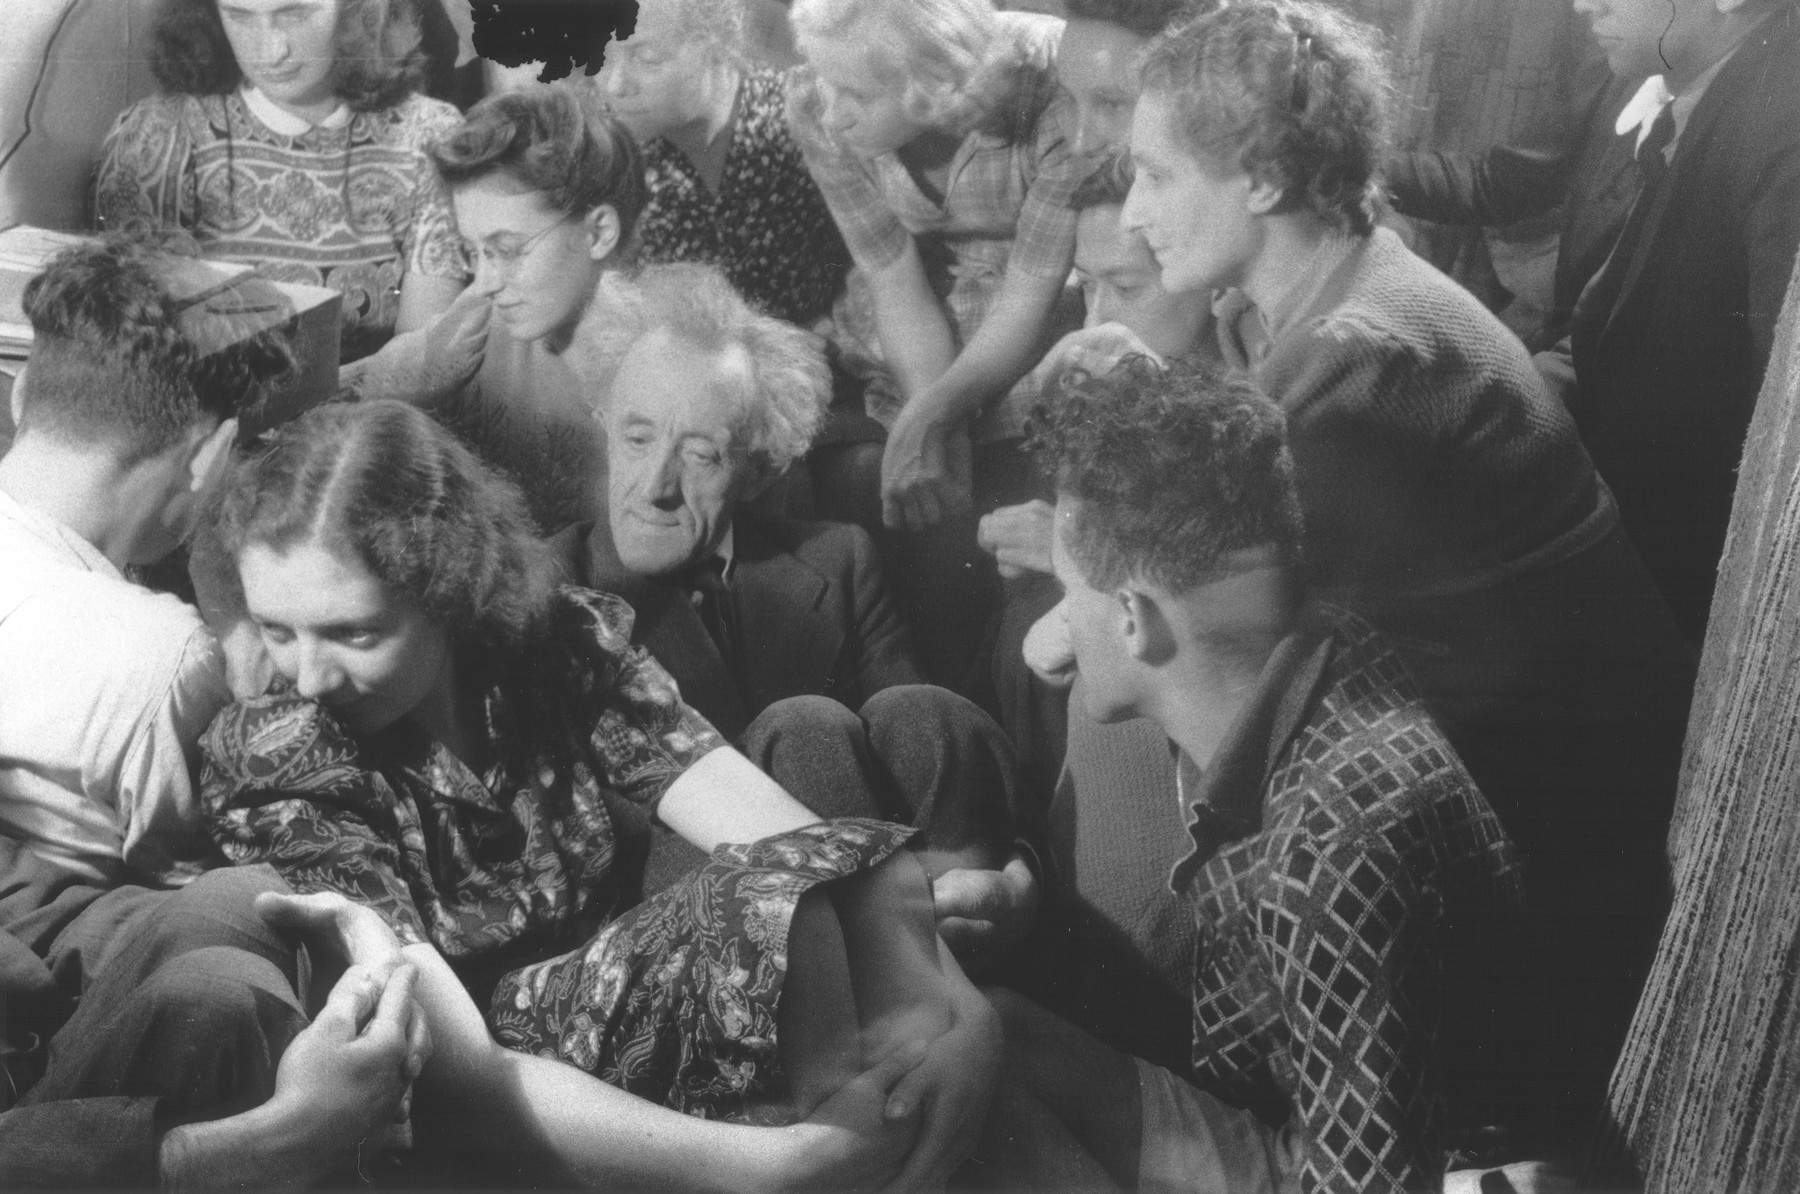 A group of Dutch resistance members and hidden Jews are crowded into a room [possibly to listen to a clandestine radio].  Those pictured include Hans Pos, Marie Scheres, Bep Klant, Phiep Vahrmayer, Rosette Aussen-Muscoviter, Oei Tjensit, Benno Aussen and Lizzy Pos.